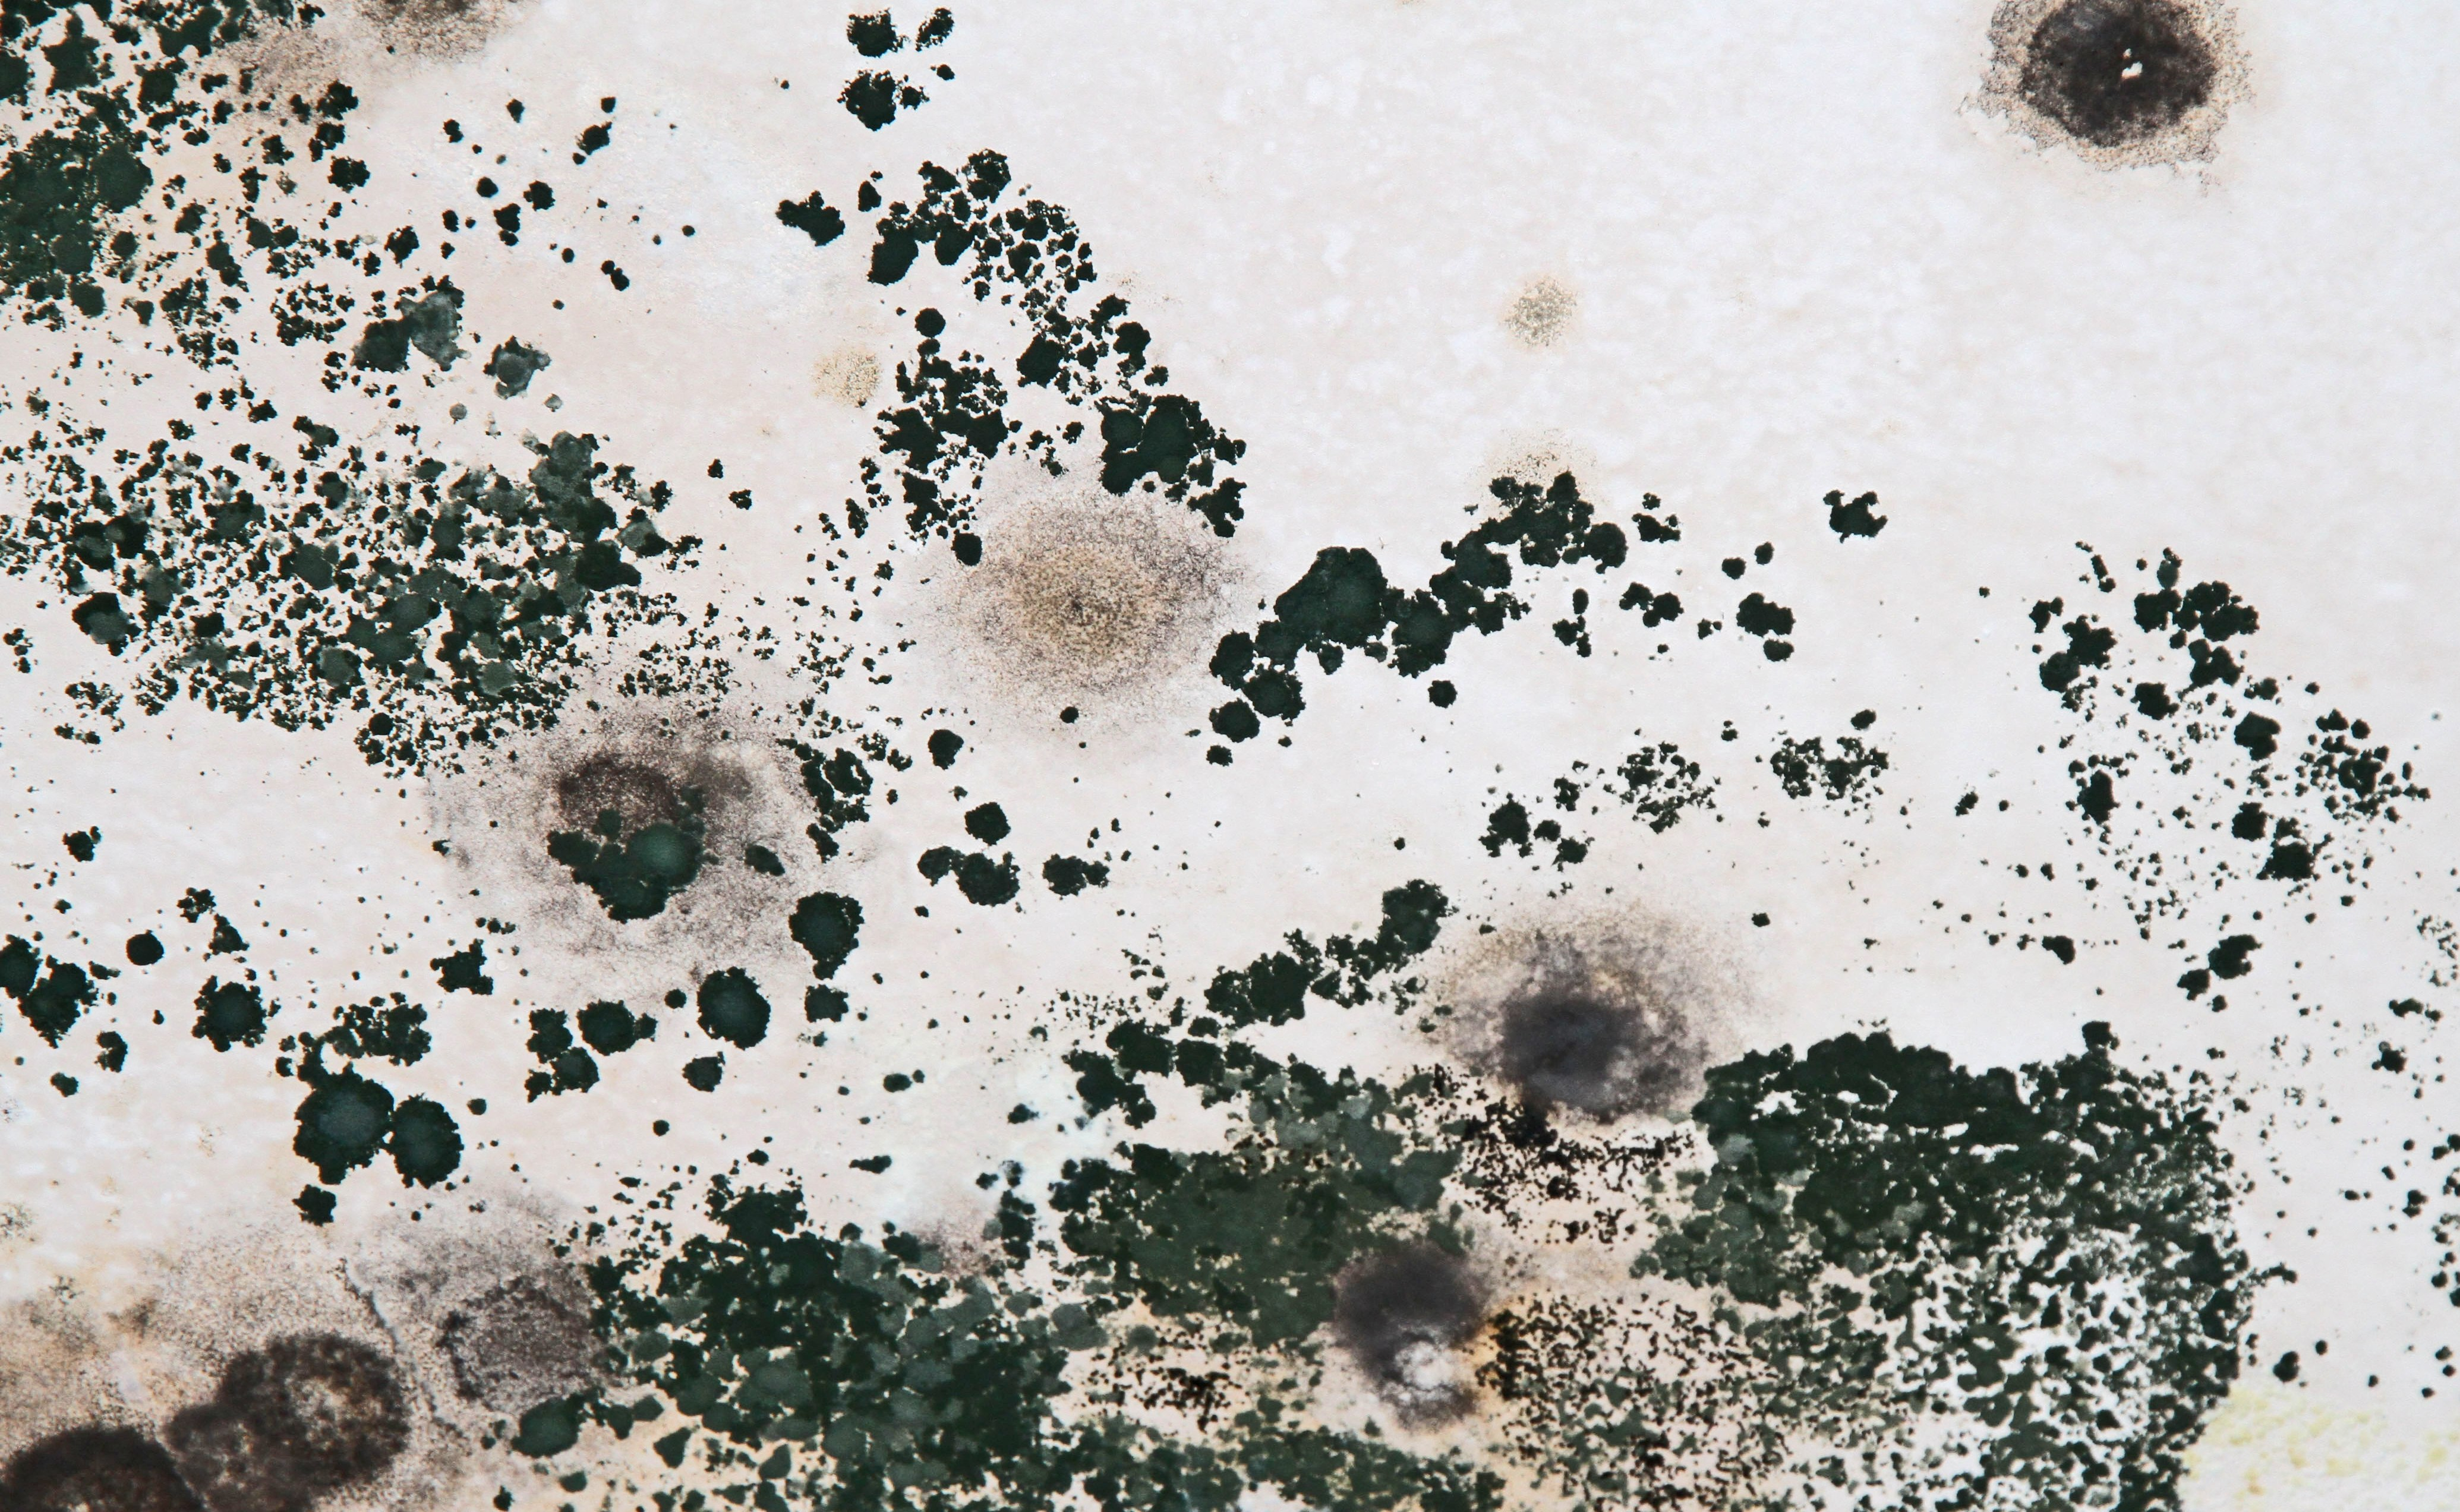 How to identify black mold - Image